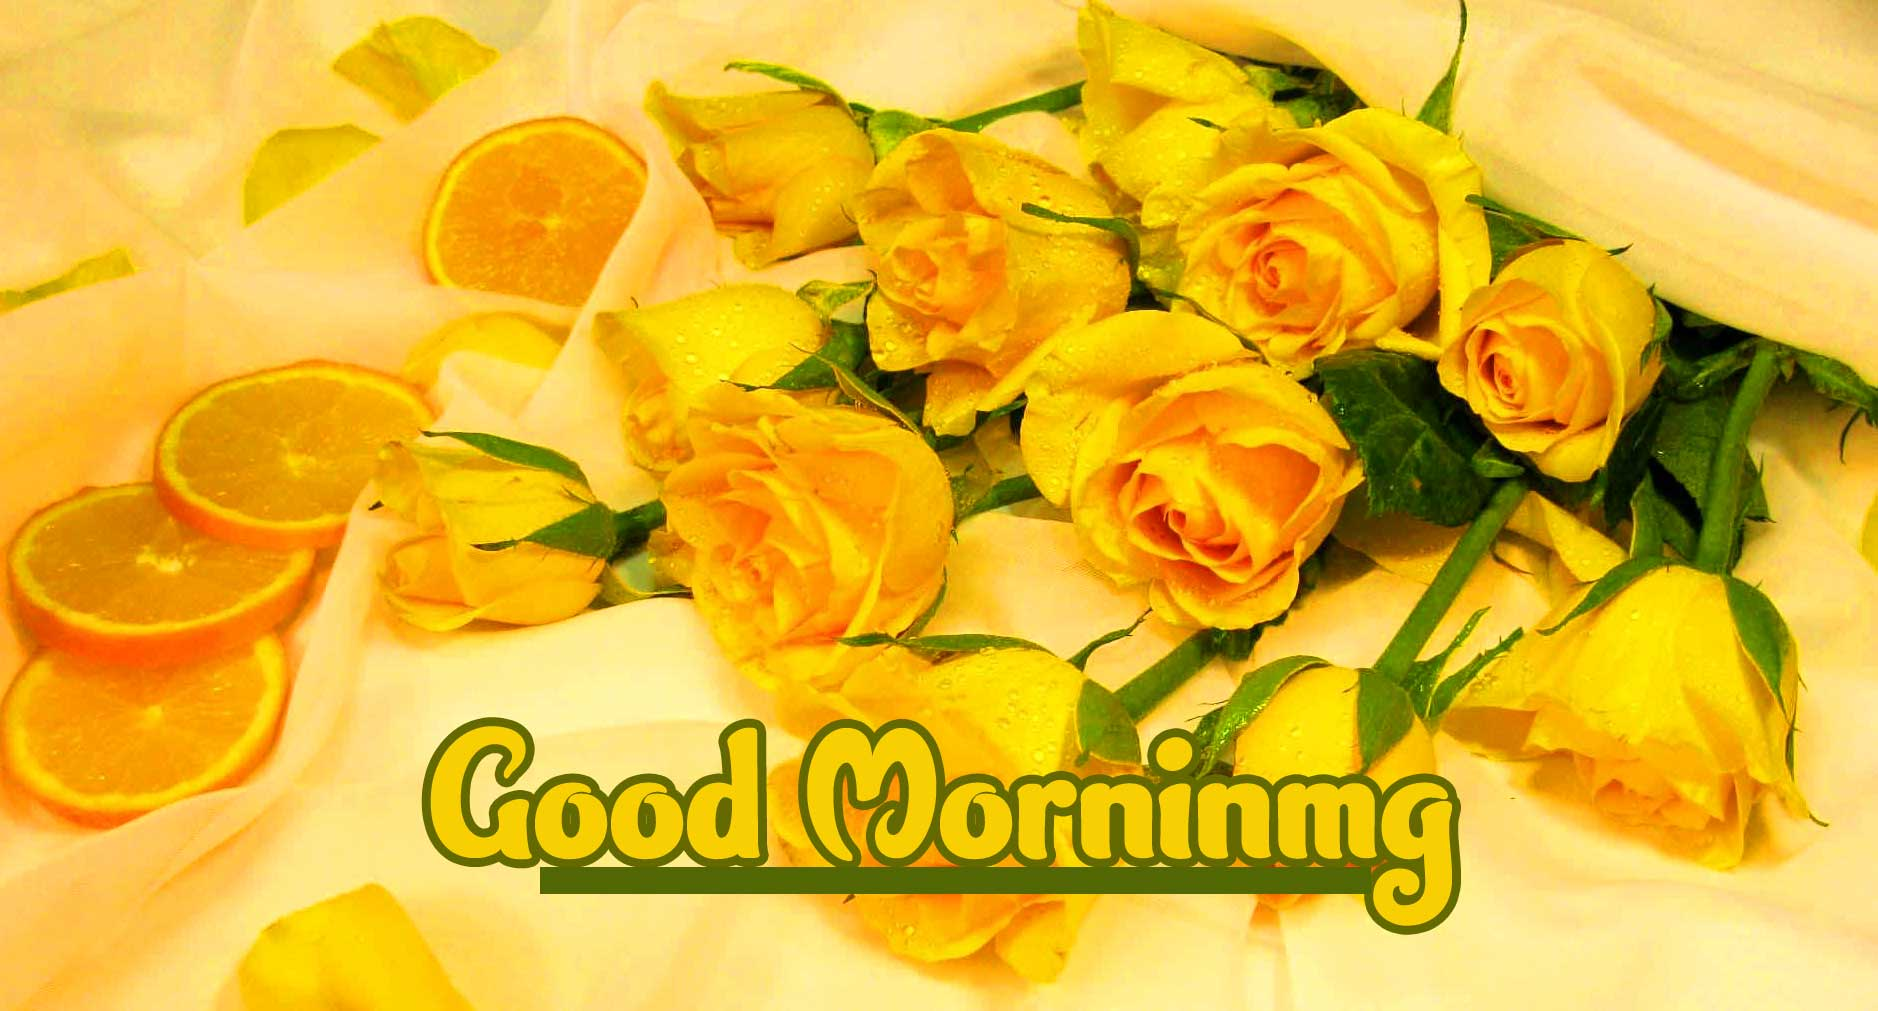 Good Morning Wishes Images Pics Wallpaper Download